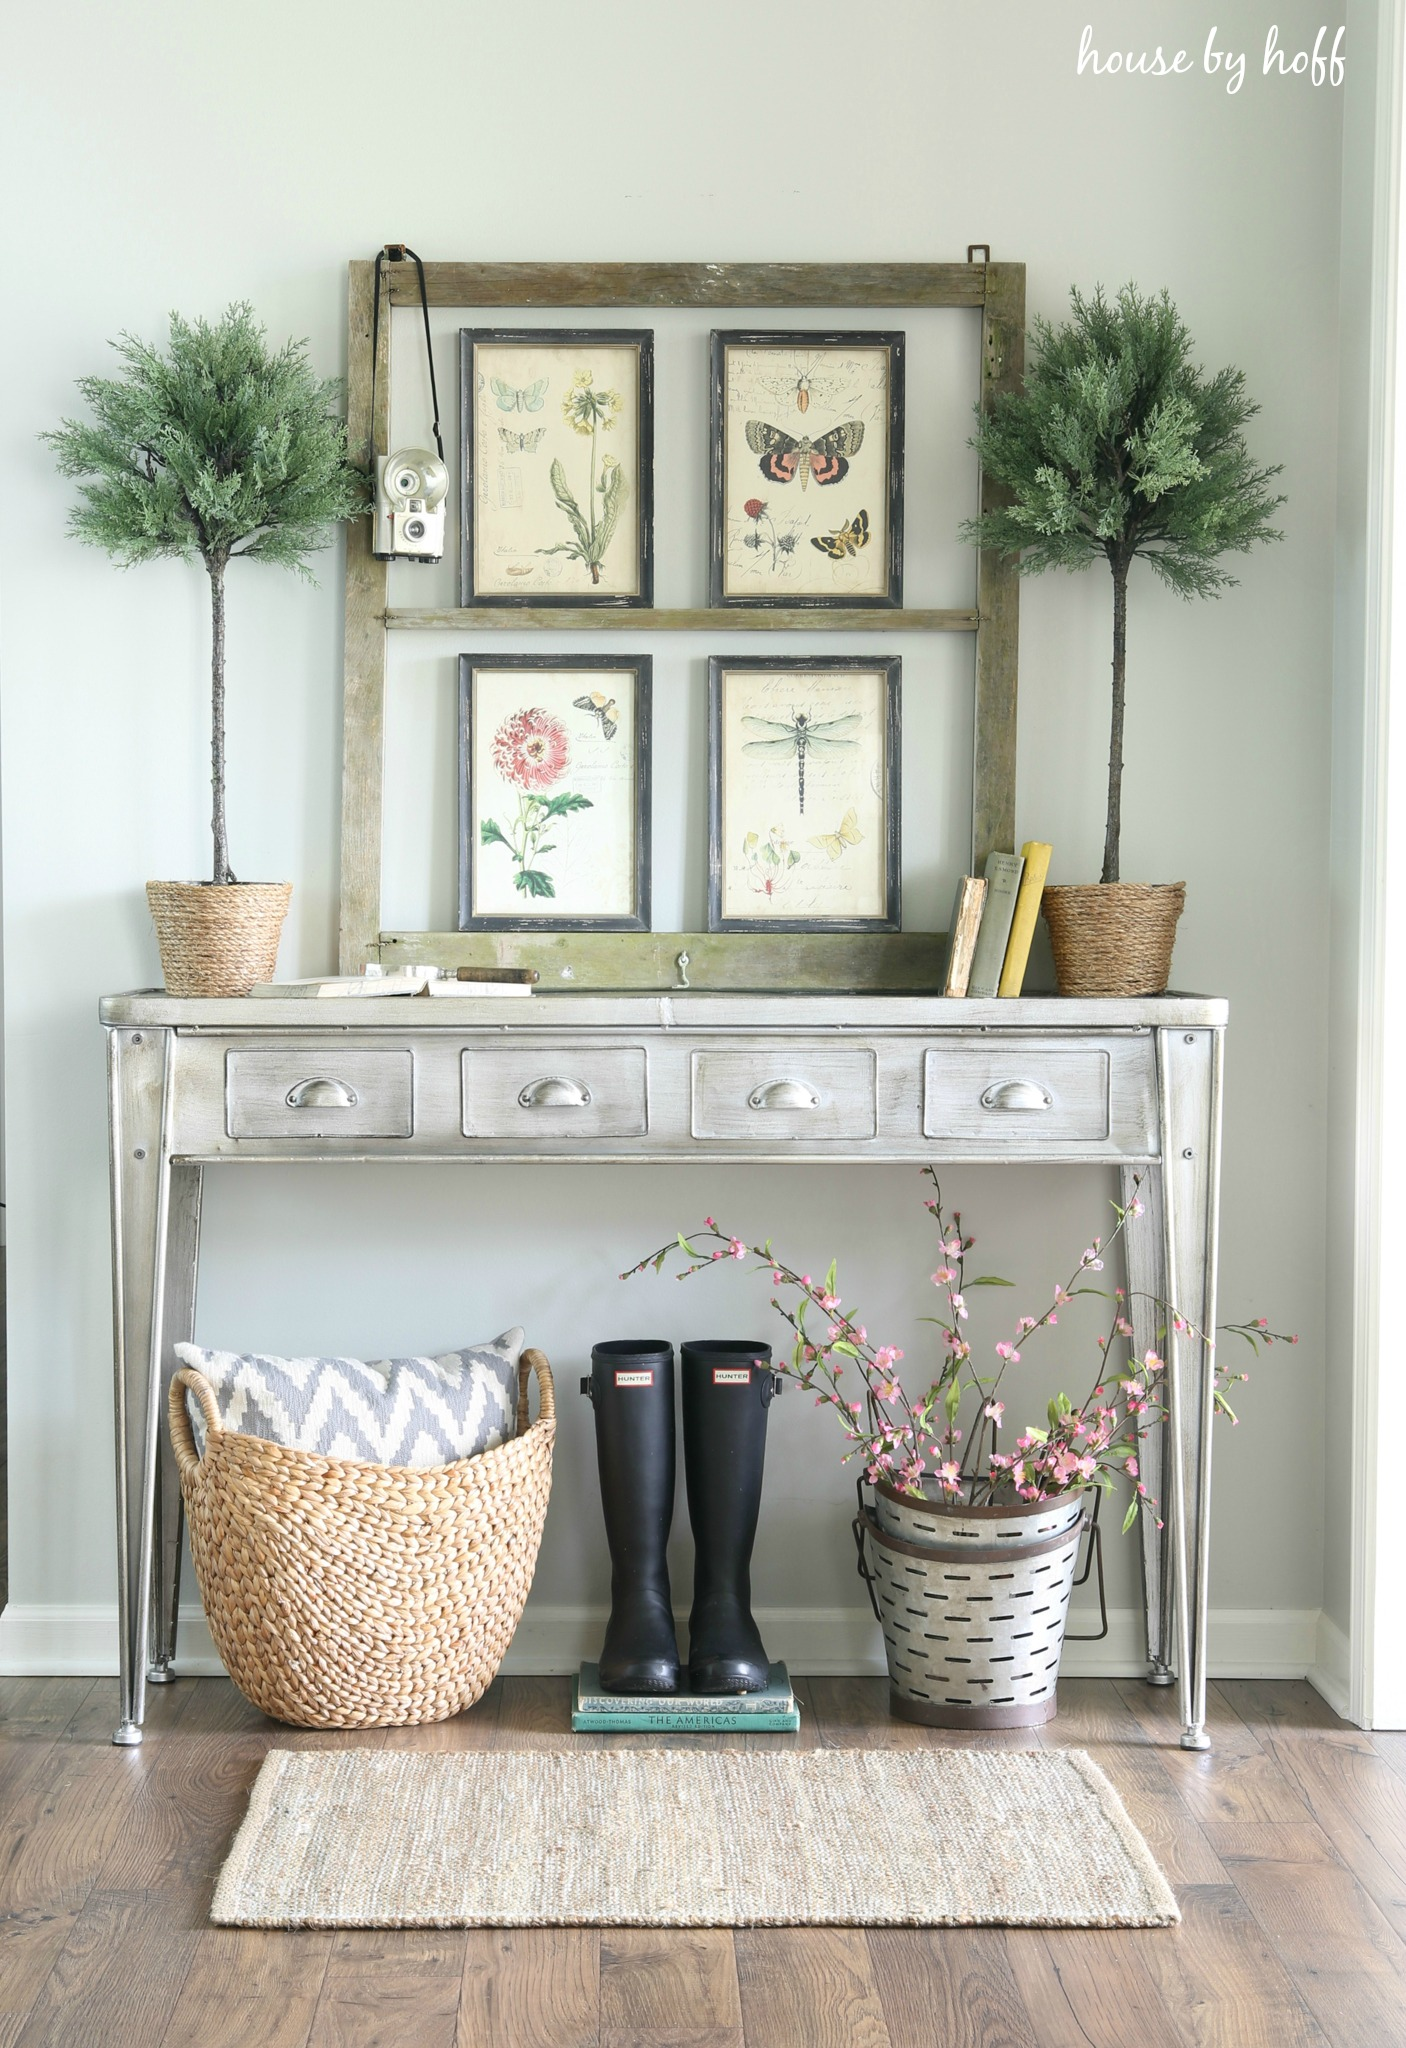 Spring Decorating with Wayfair - House by Hoff